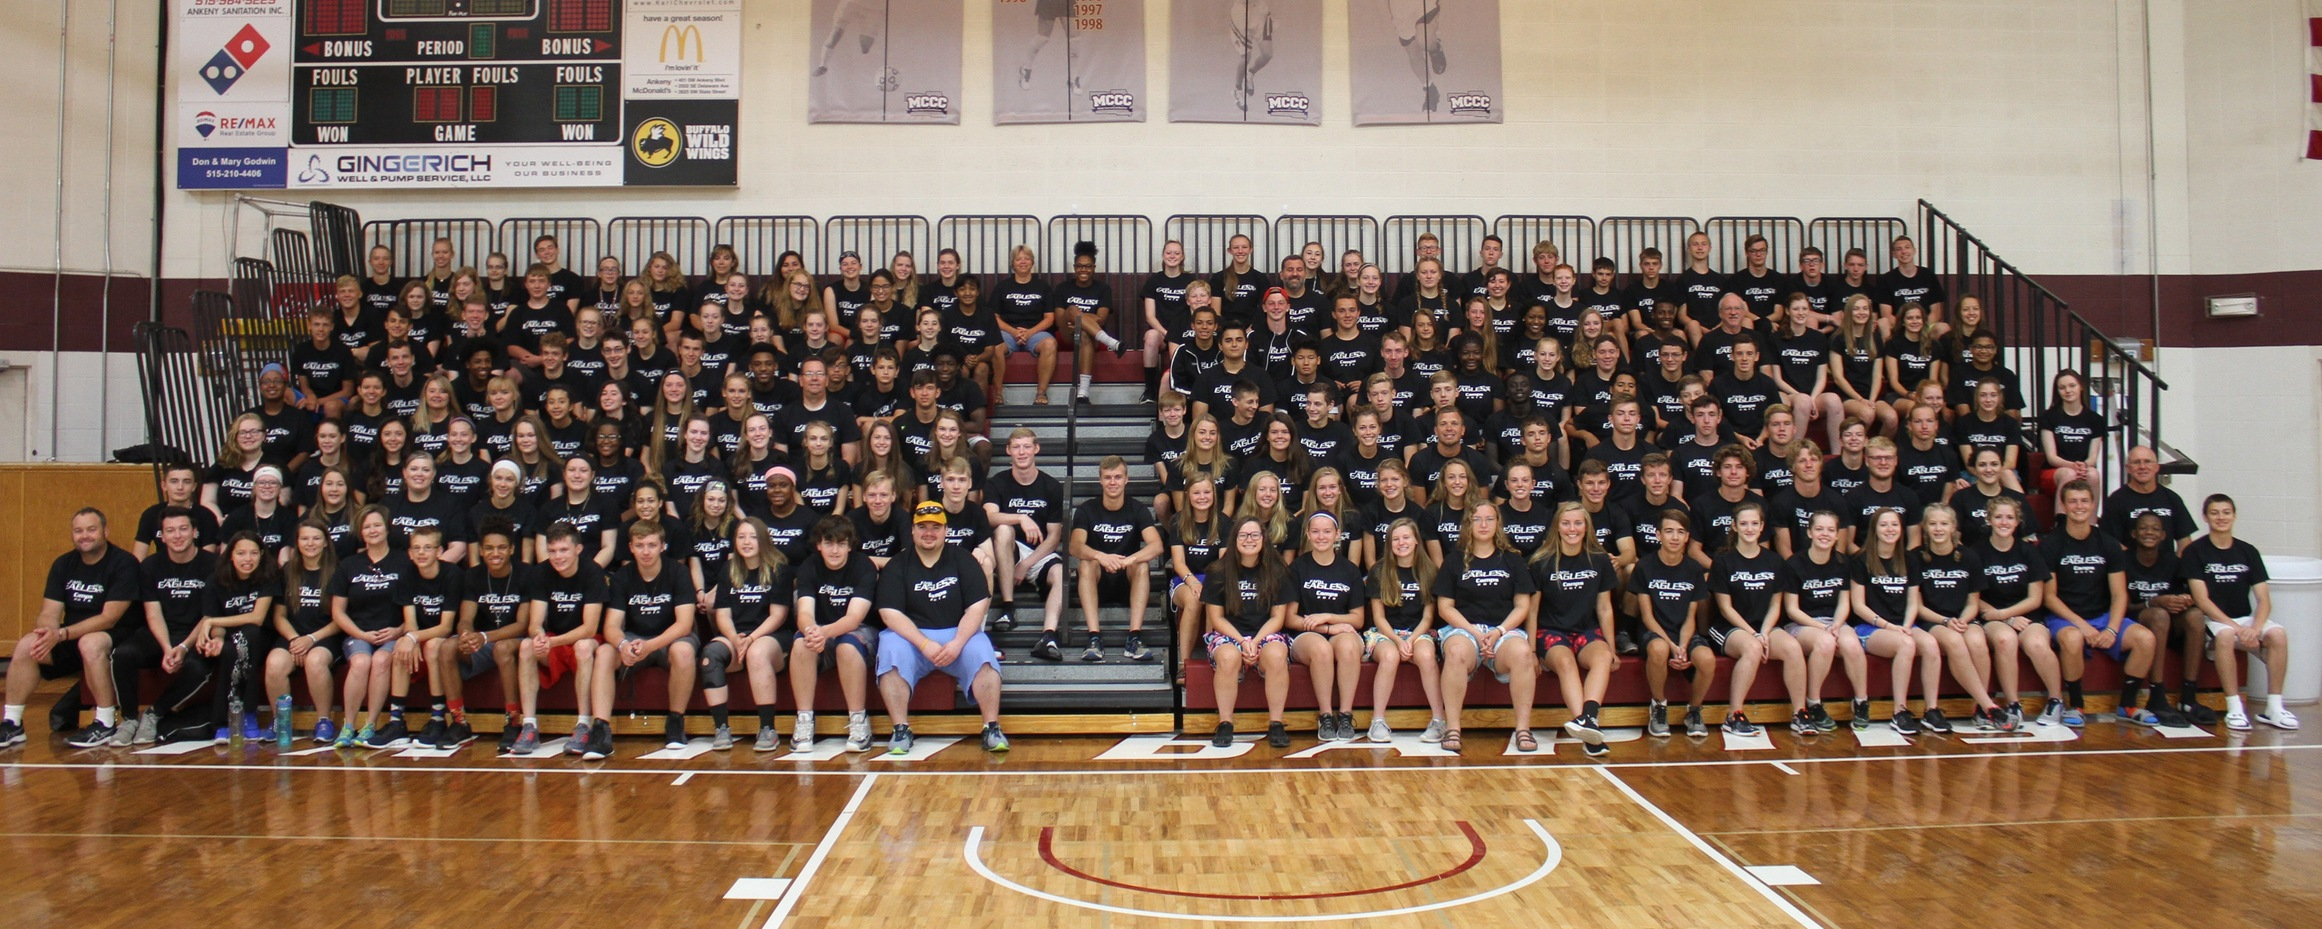 Record Turnout Highlights Great Week at Faith Eagles Sports Camp